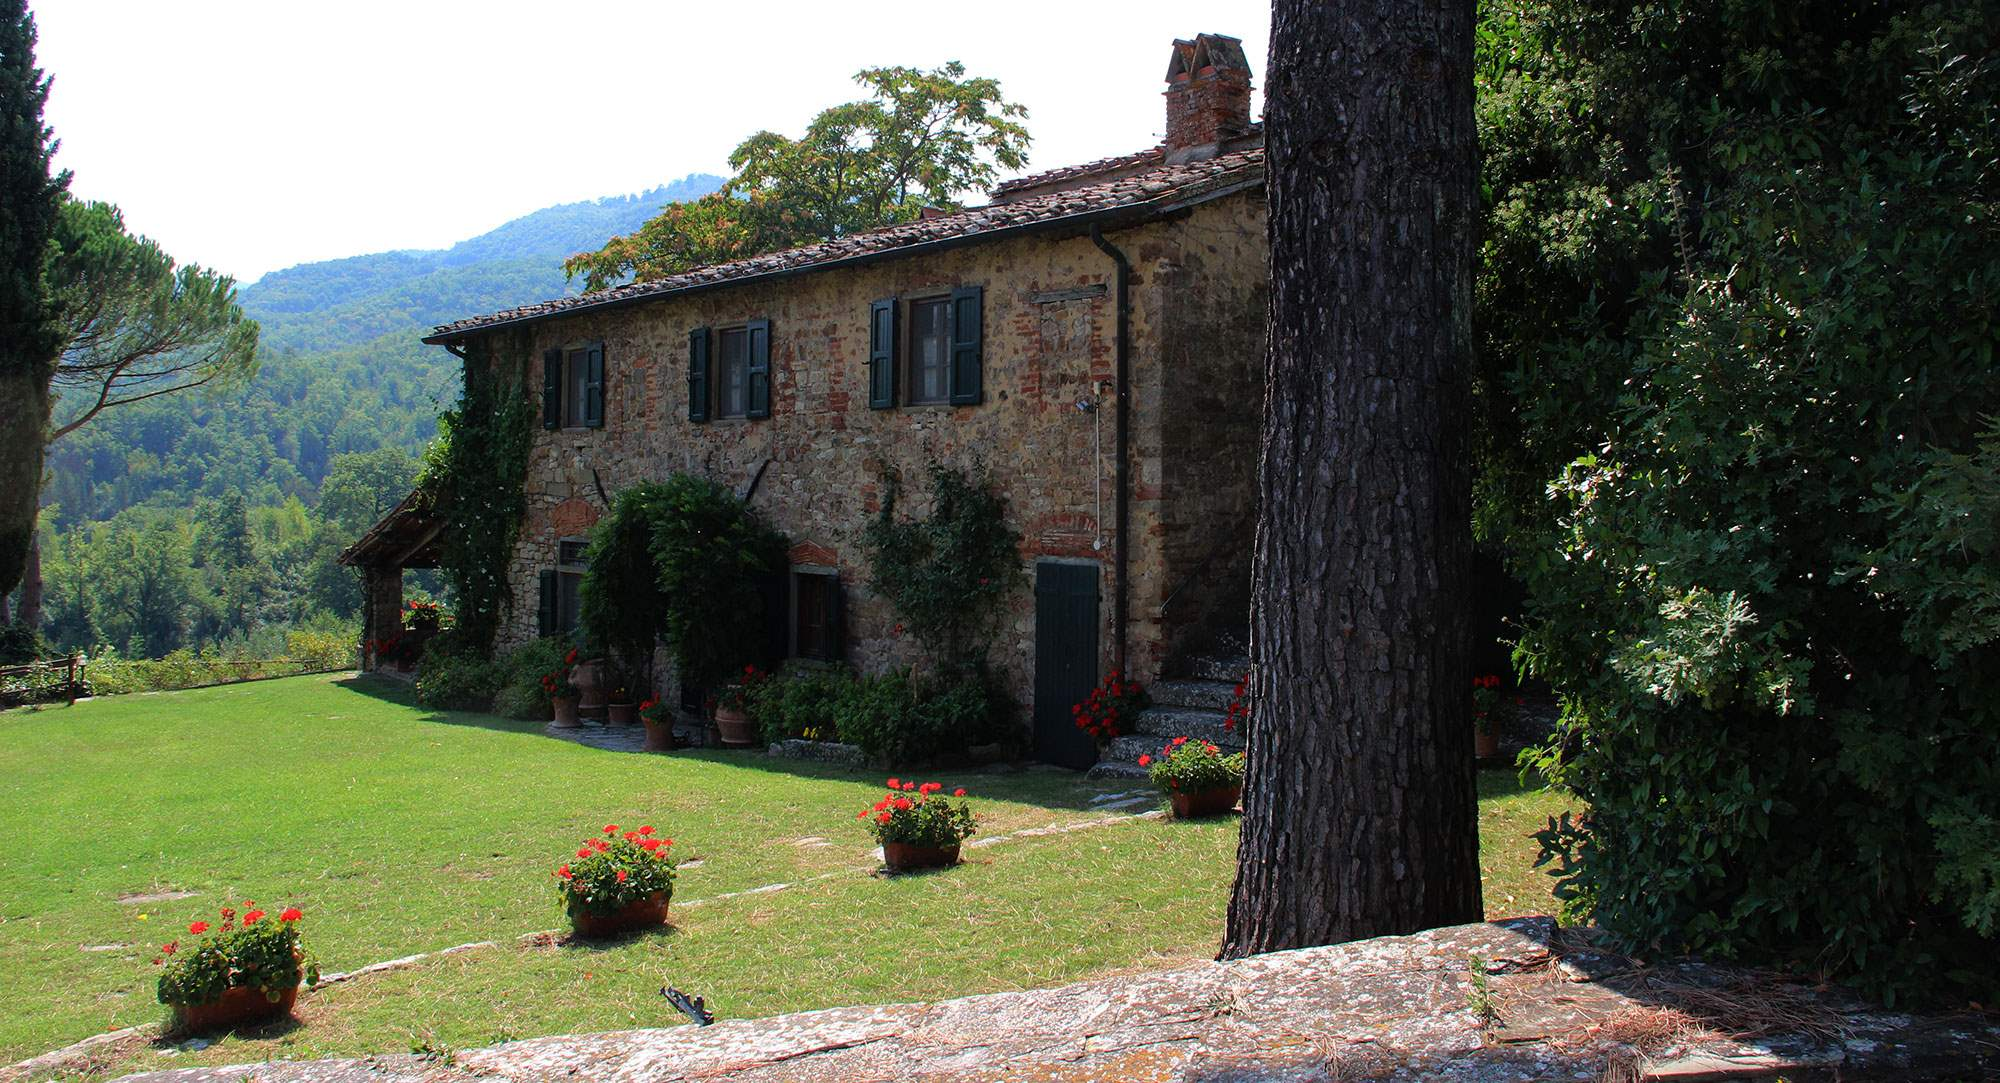 Villa Felicita, Main house only, 6 persons rate, 3 bedroom villa in Chianti & Countryside, Tuscany Photo #12